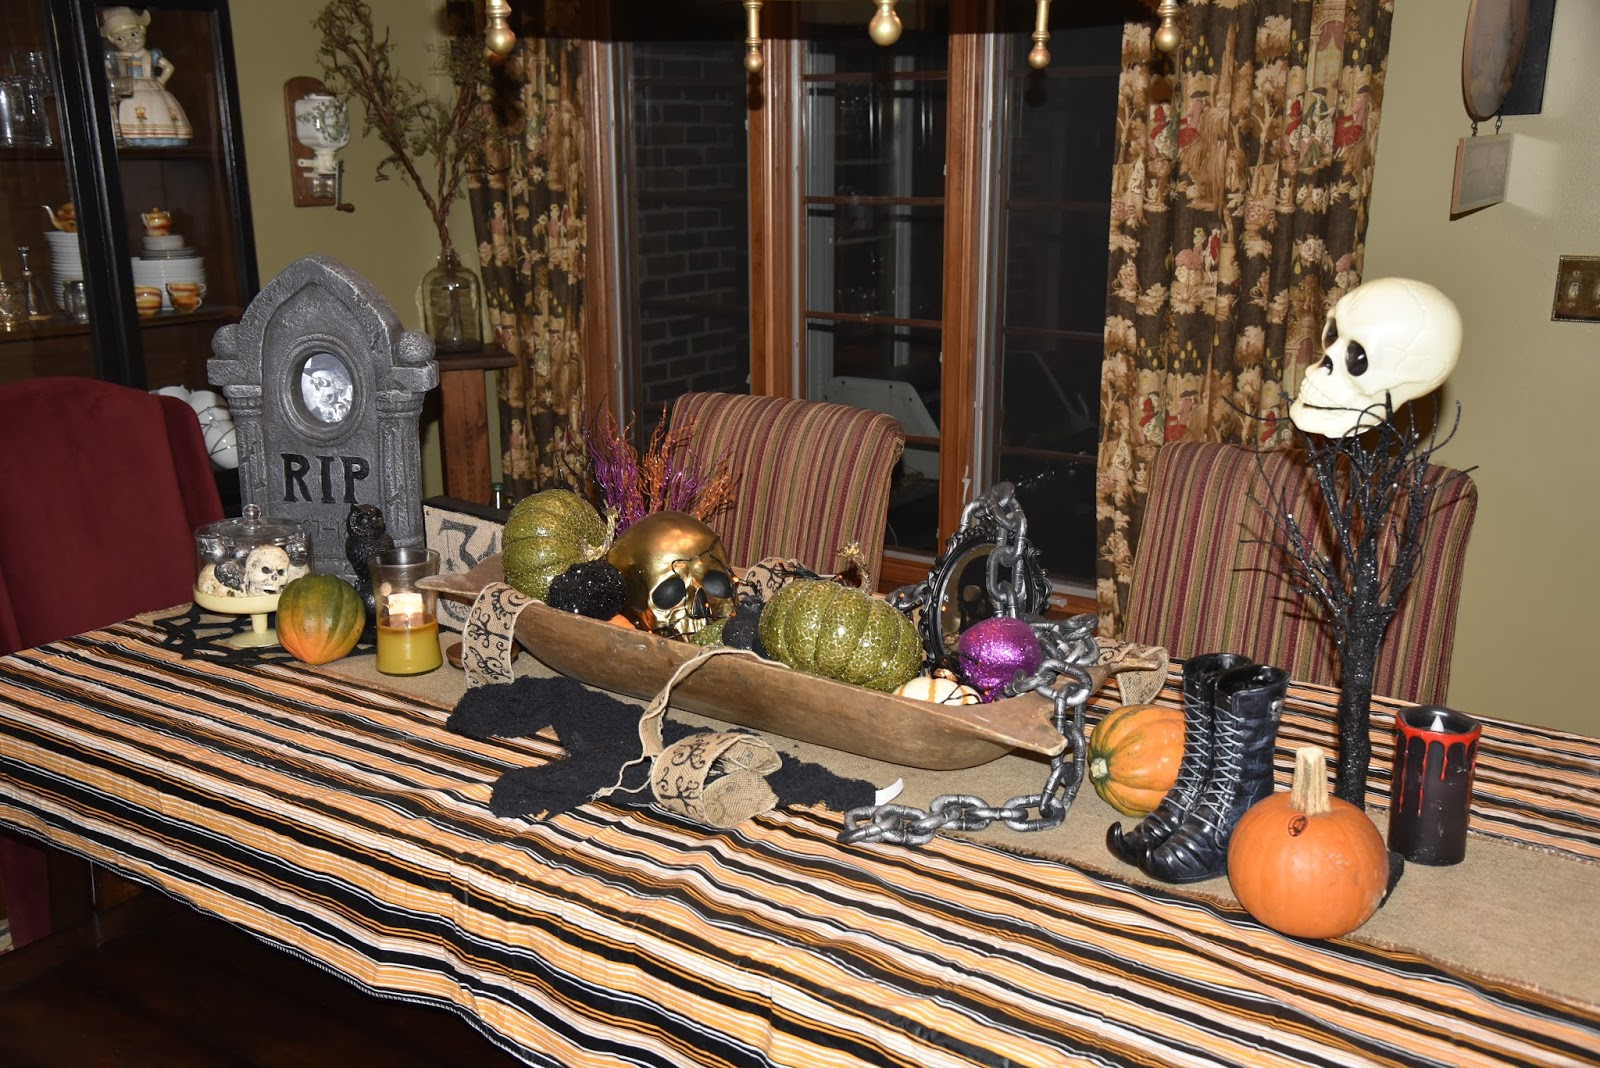 Work Halloween Party Ideas  The Story of Us Halloween Work Party